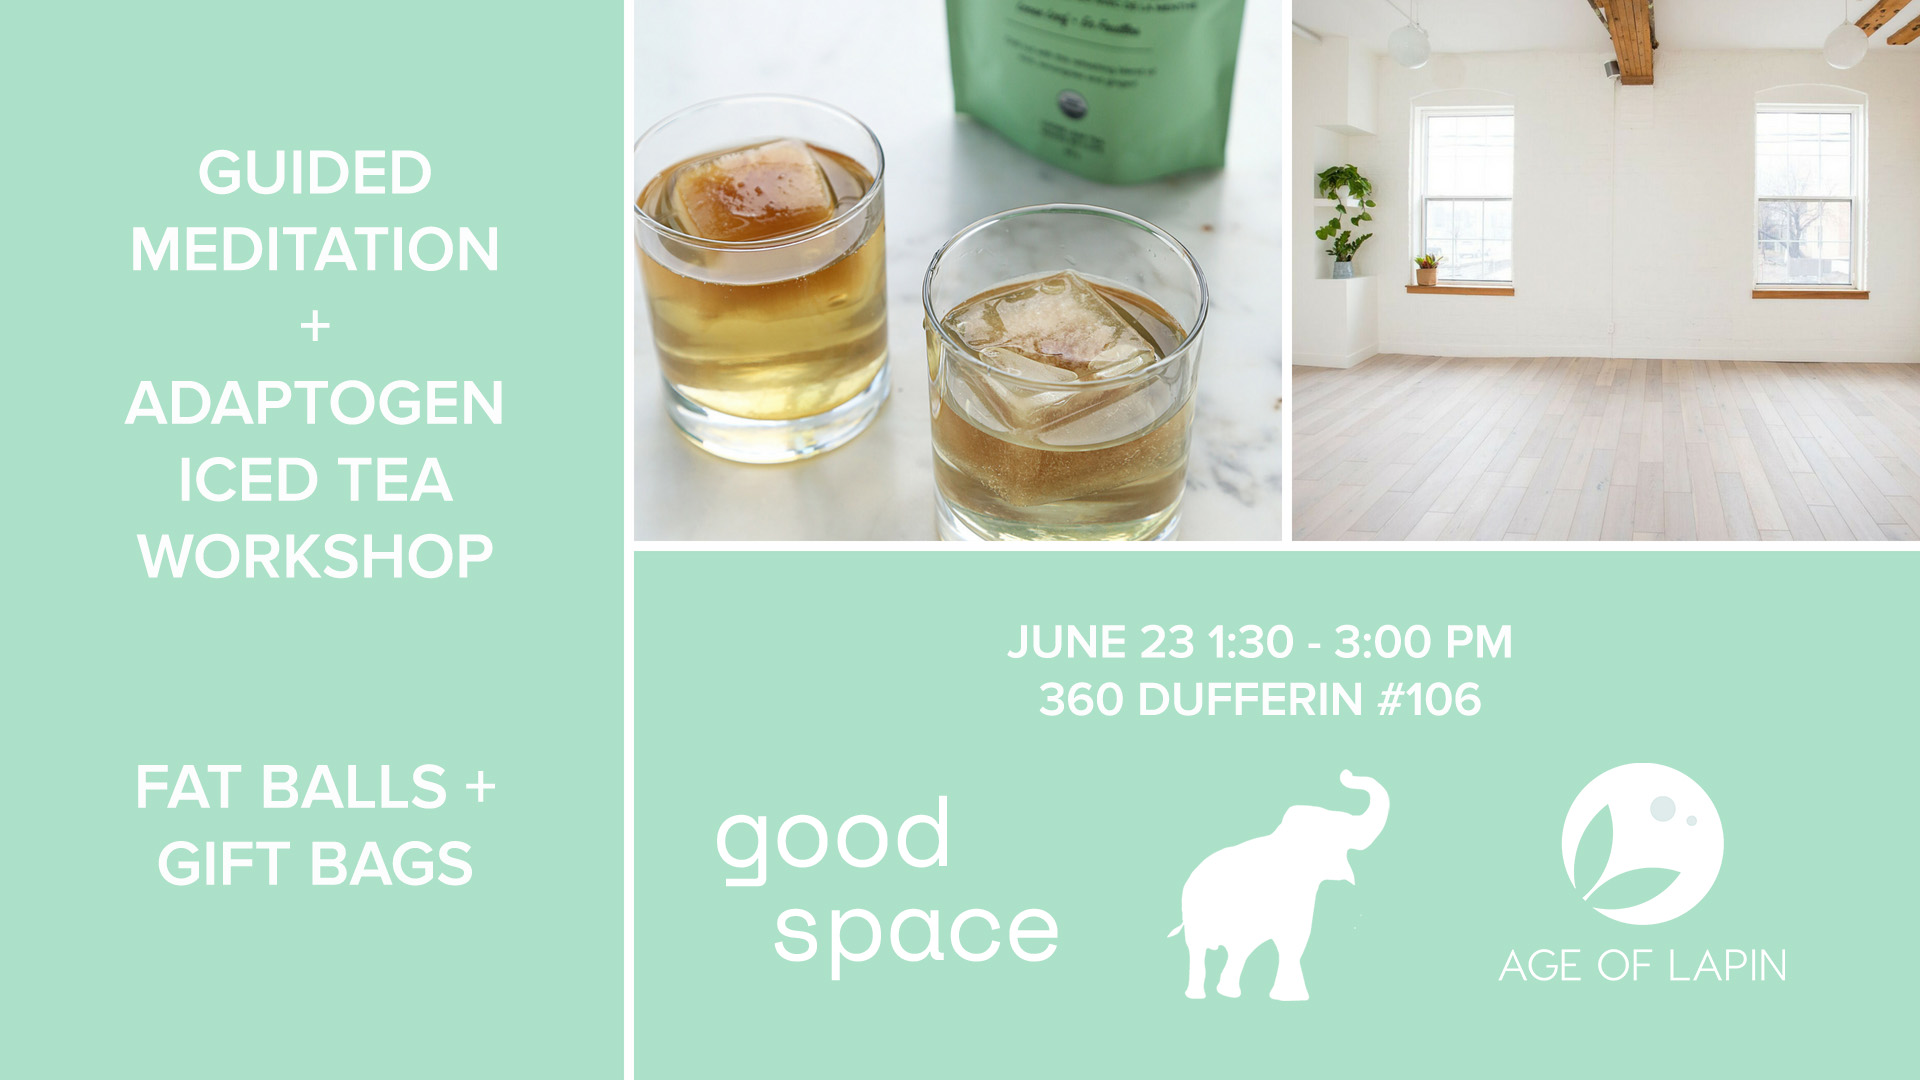 You're Invited: Guided Meditation and Adaptogen Iced Tea Workshop Information Flyer